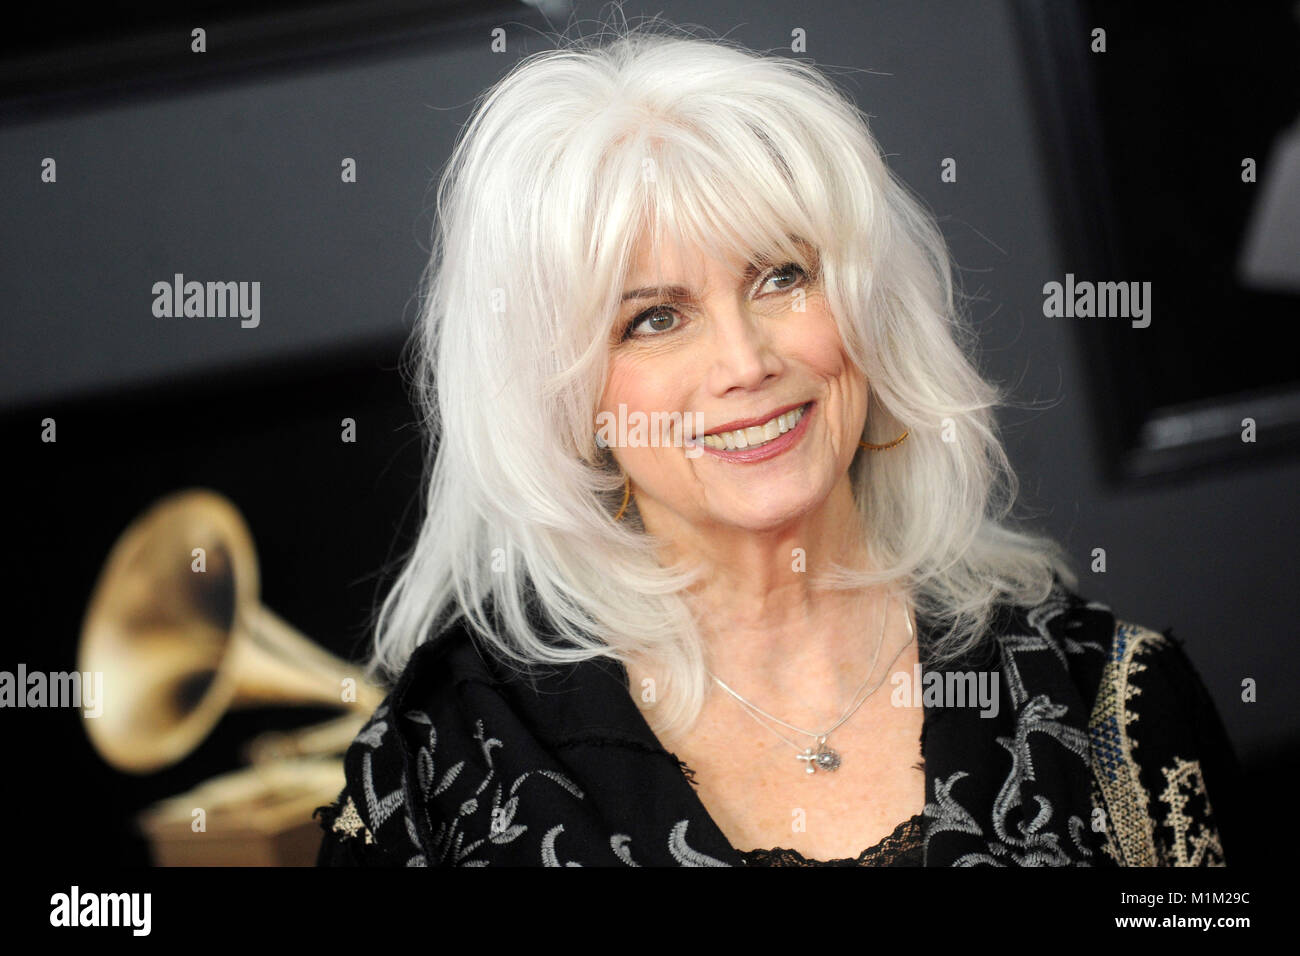 Emmylou Harris attends the 60th Annual Grammy Awards 2018 ... Emmylou Harris In Nederland In 2018